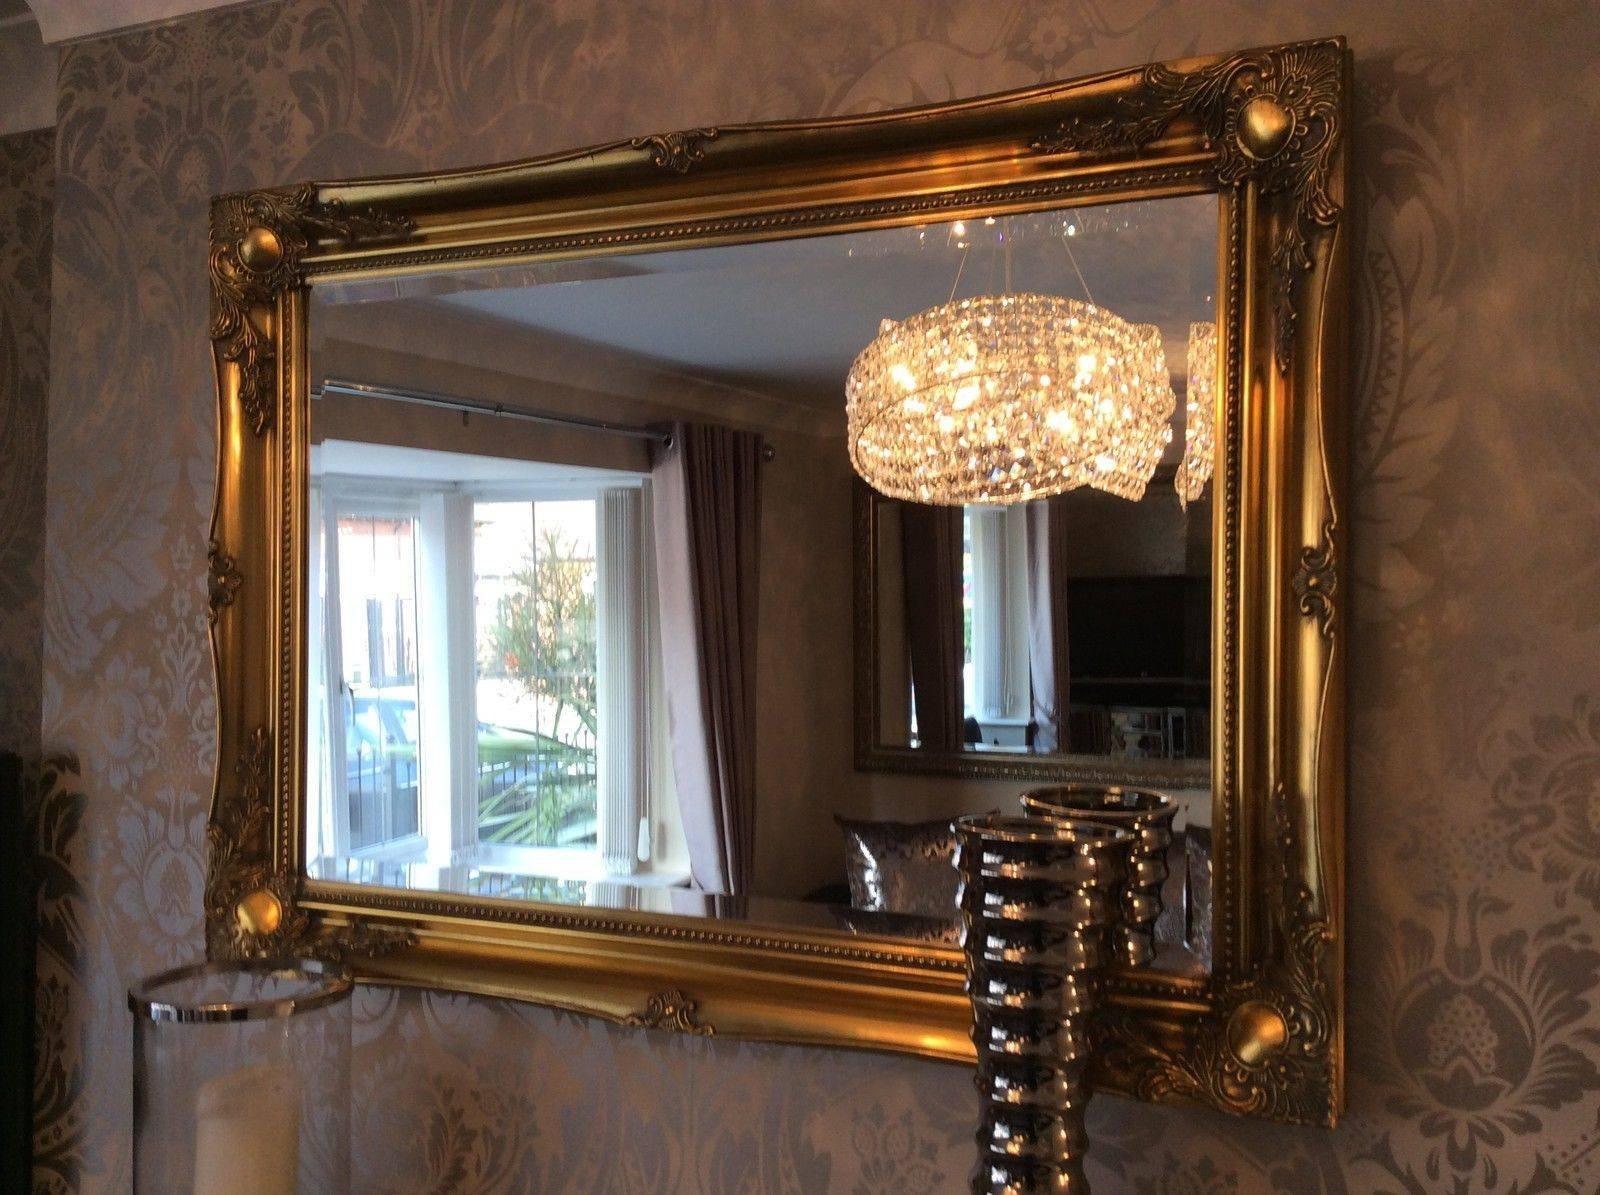 Decorative Gold Mirrors. Gold Decorative Framed Bevelled Wall regarding Gold Ornate Mirrors (Image 5 of 25)